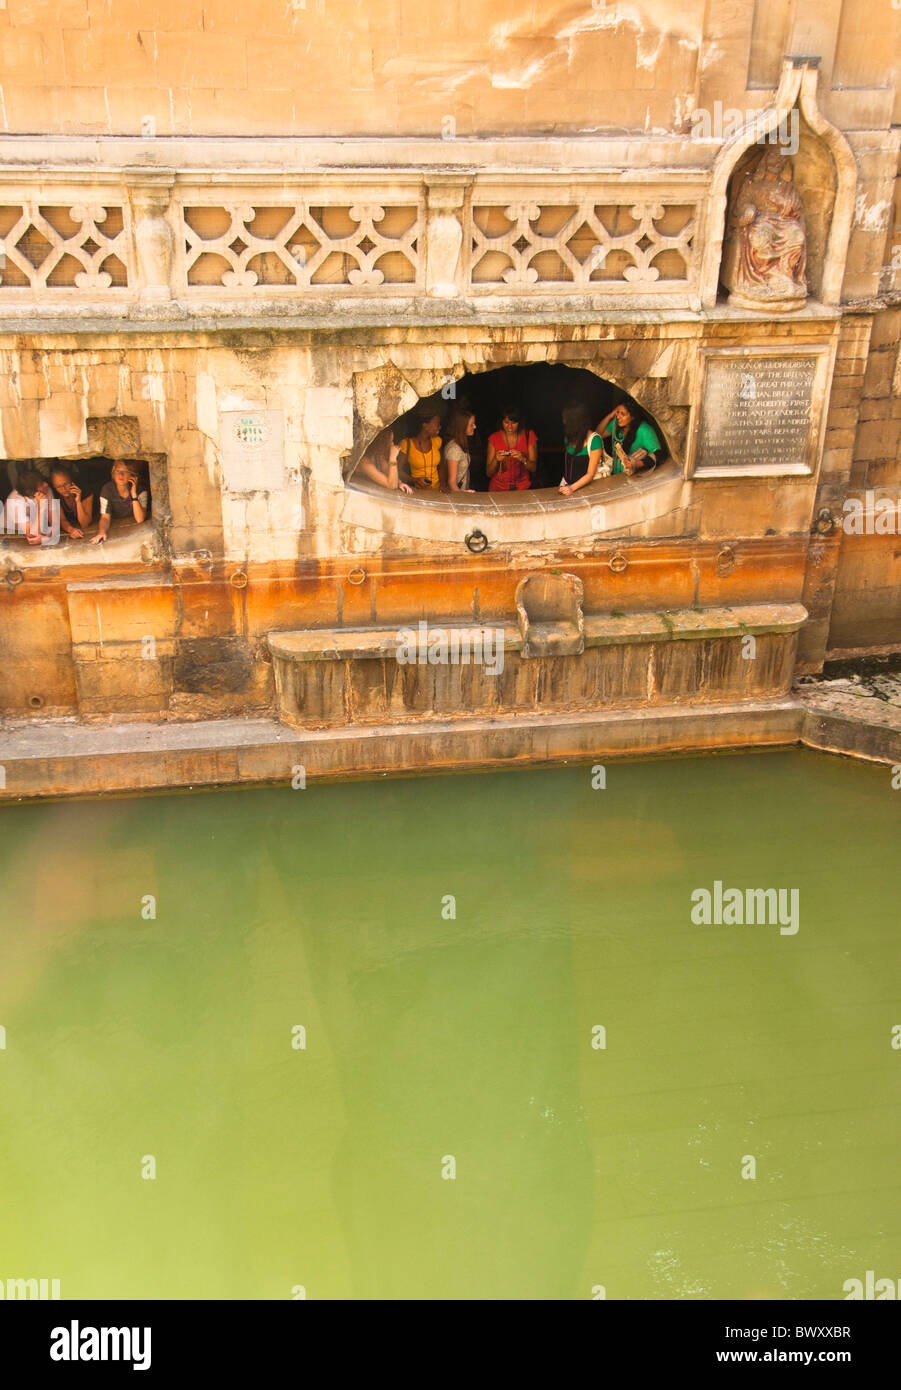 Kings Bath, Roman Baths with children looking out at the water, BATH, England UK - Stock Image